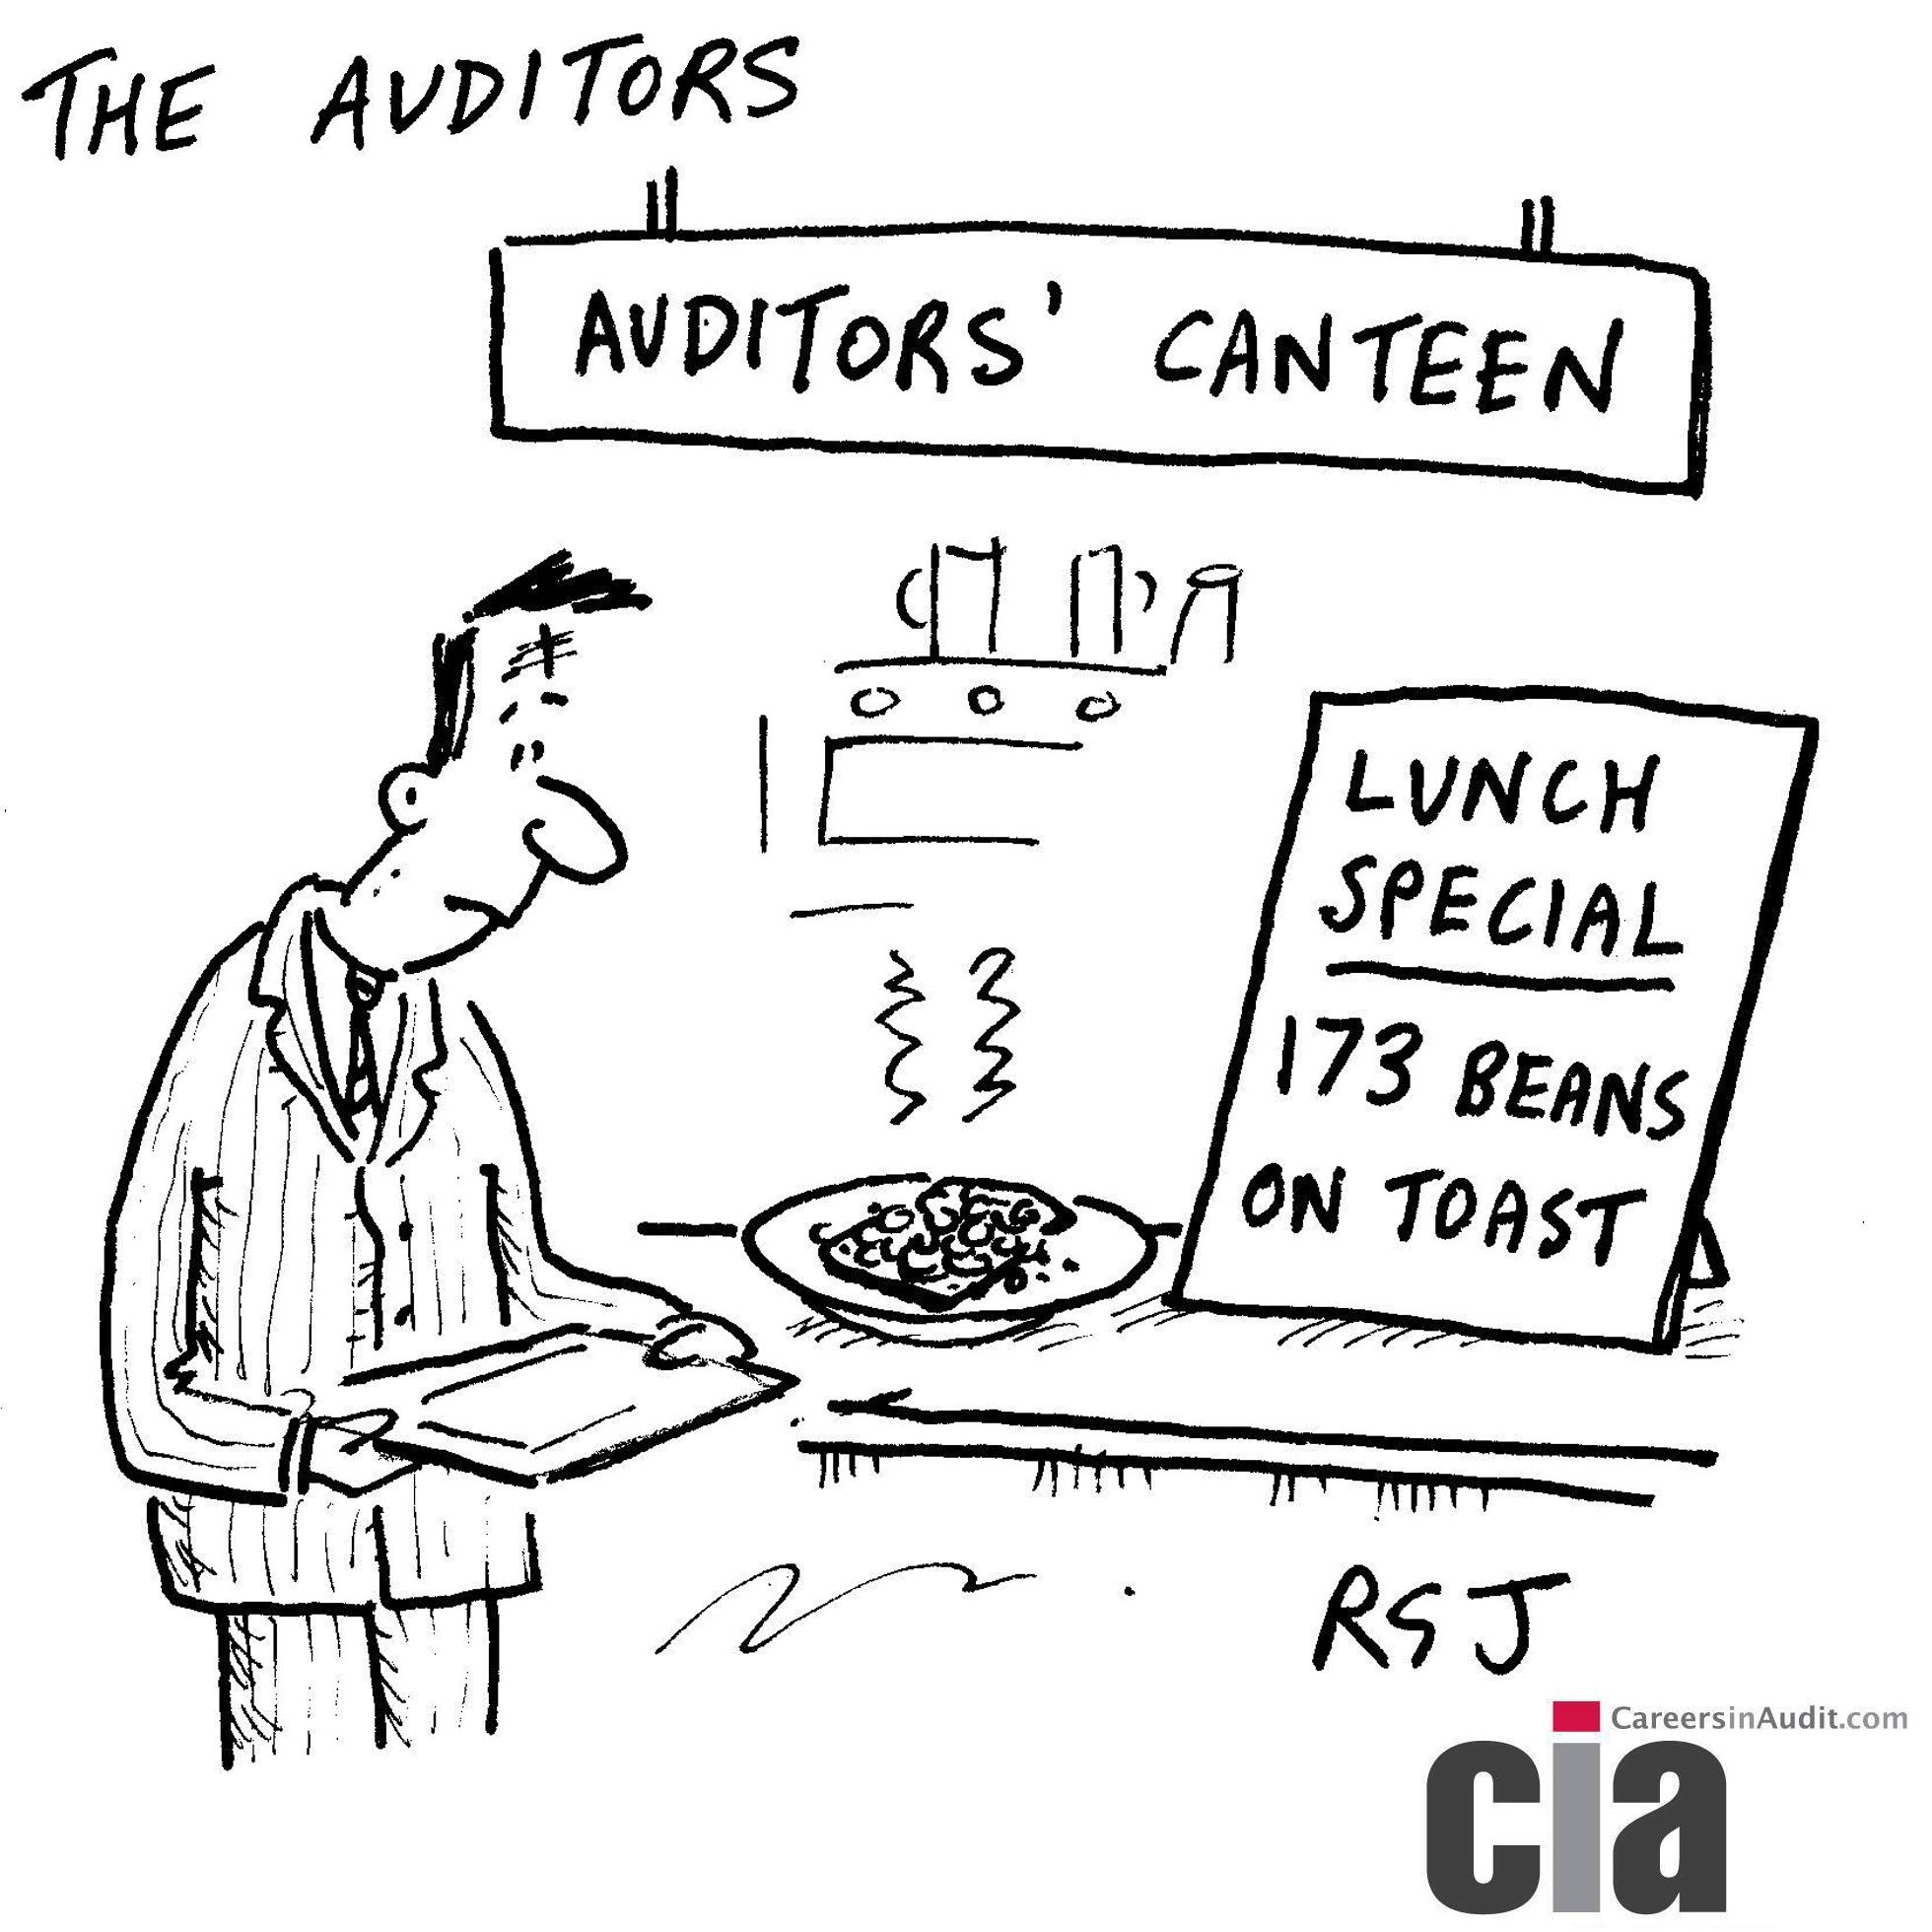 Audit Cartoon  Auditors Canteen  Audit Cartoons